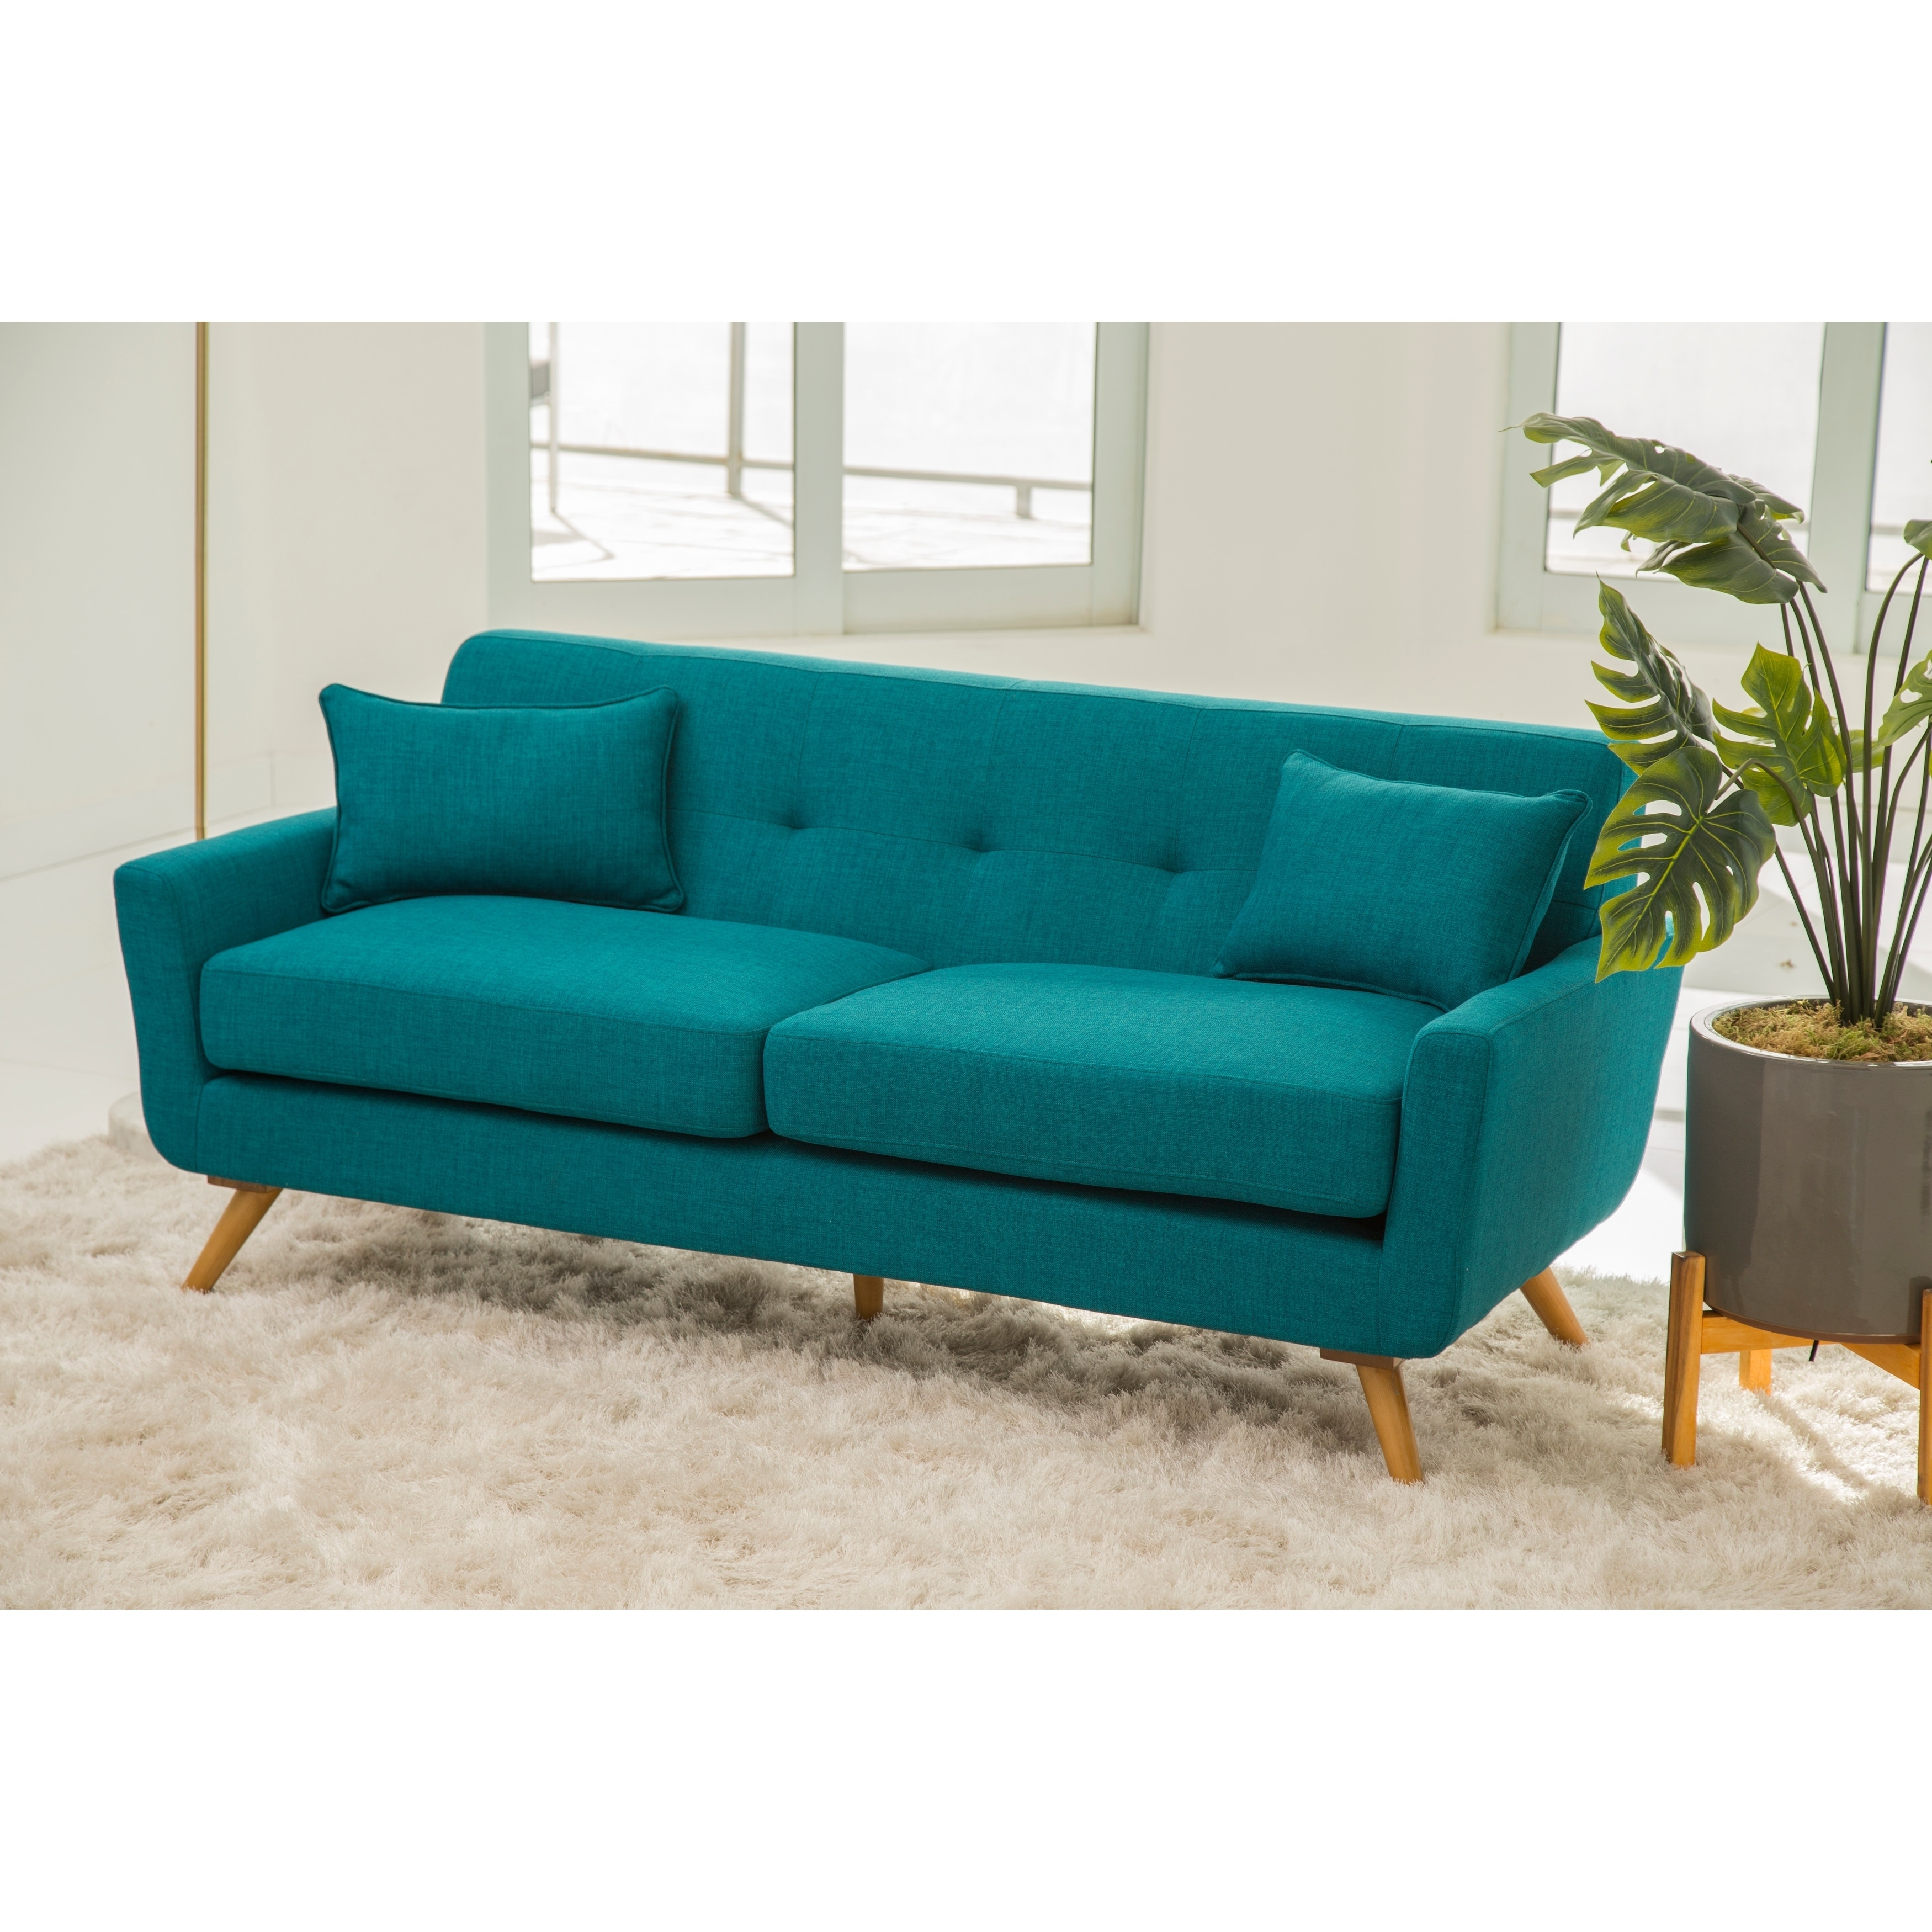 Teal Sofa Bed Abbyson Bradley Mid Century Style Teal Sofa On Free Thesofa